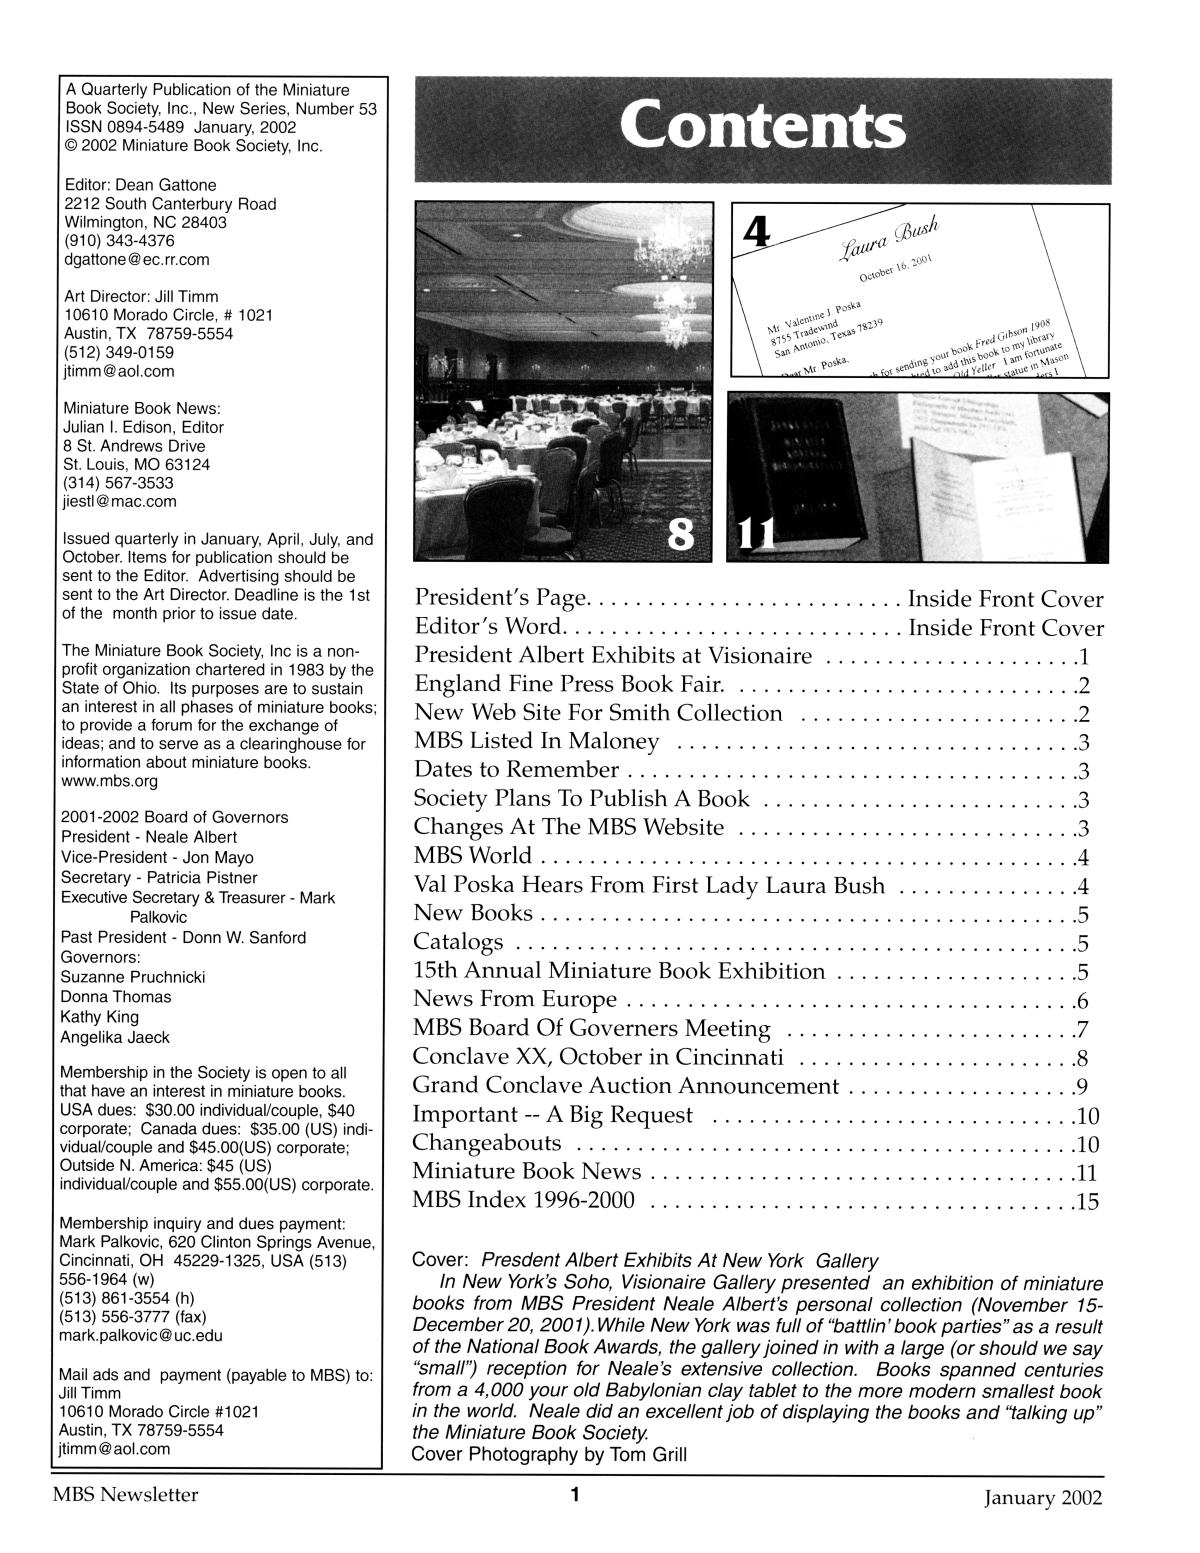 Miniature Book Society Newsletter 2002 January                                                                                                      1